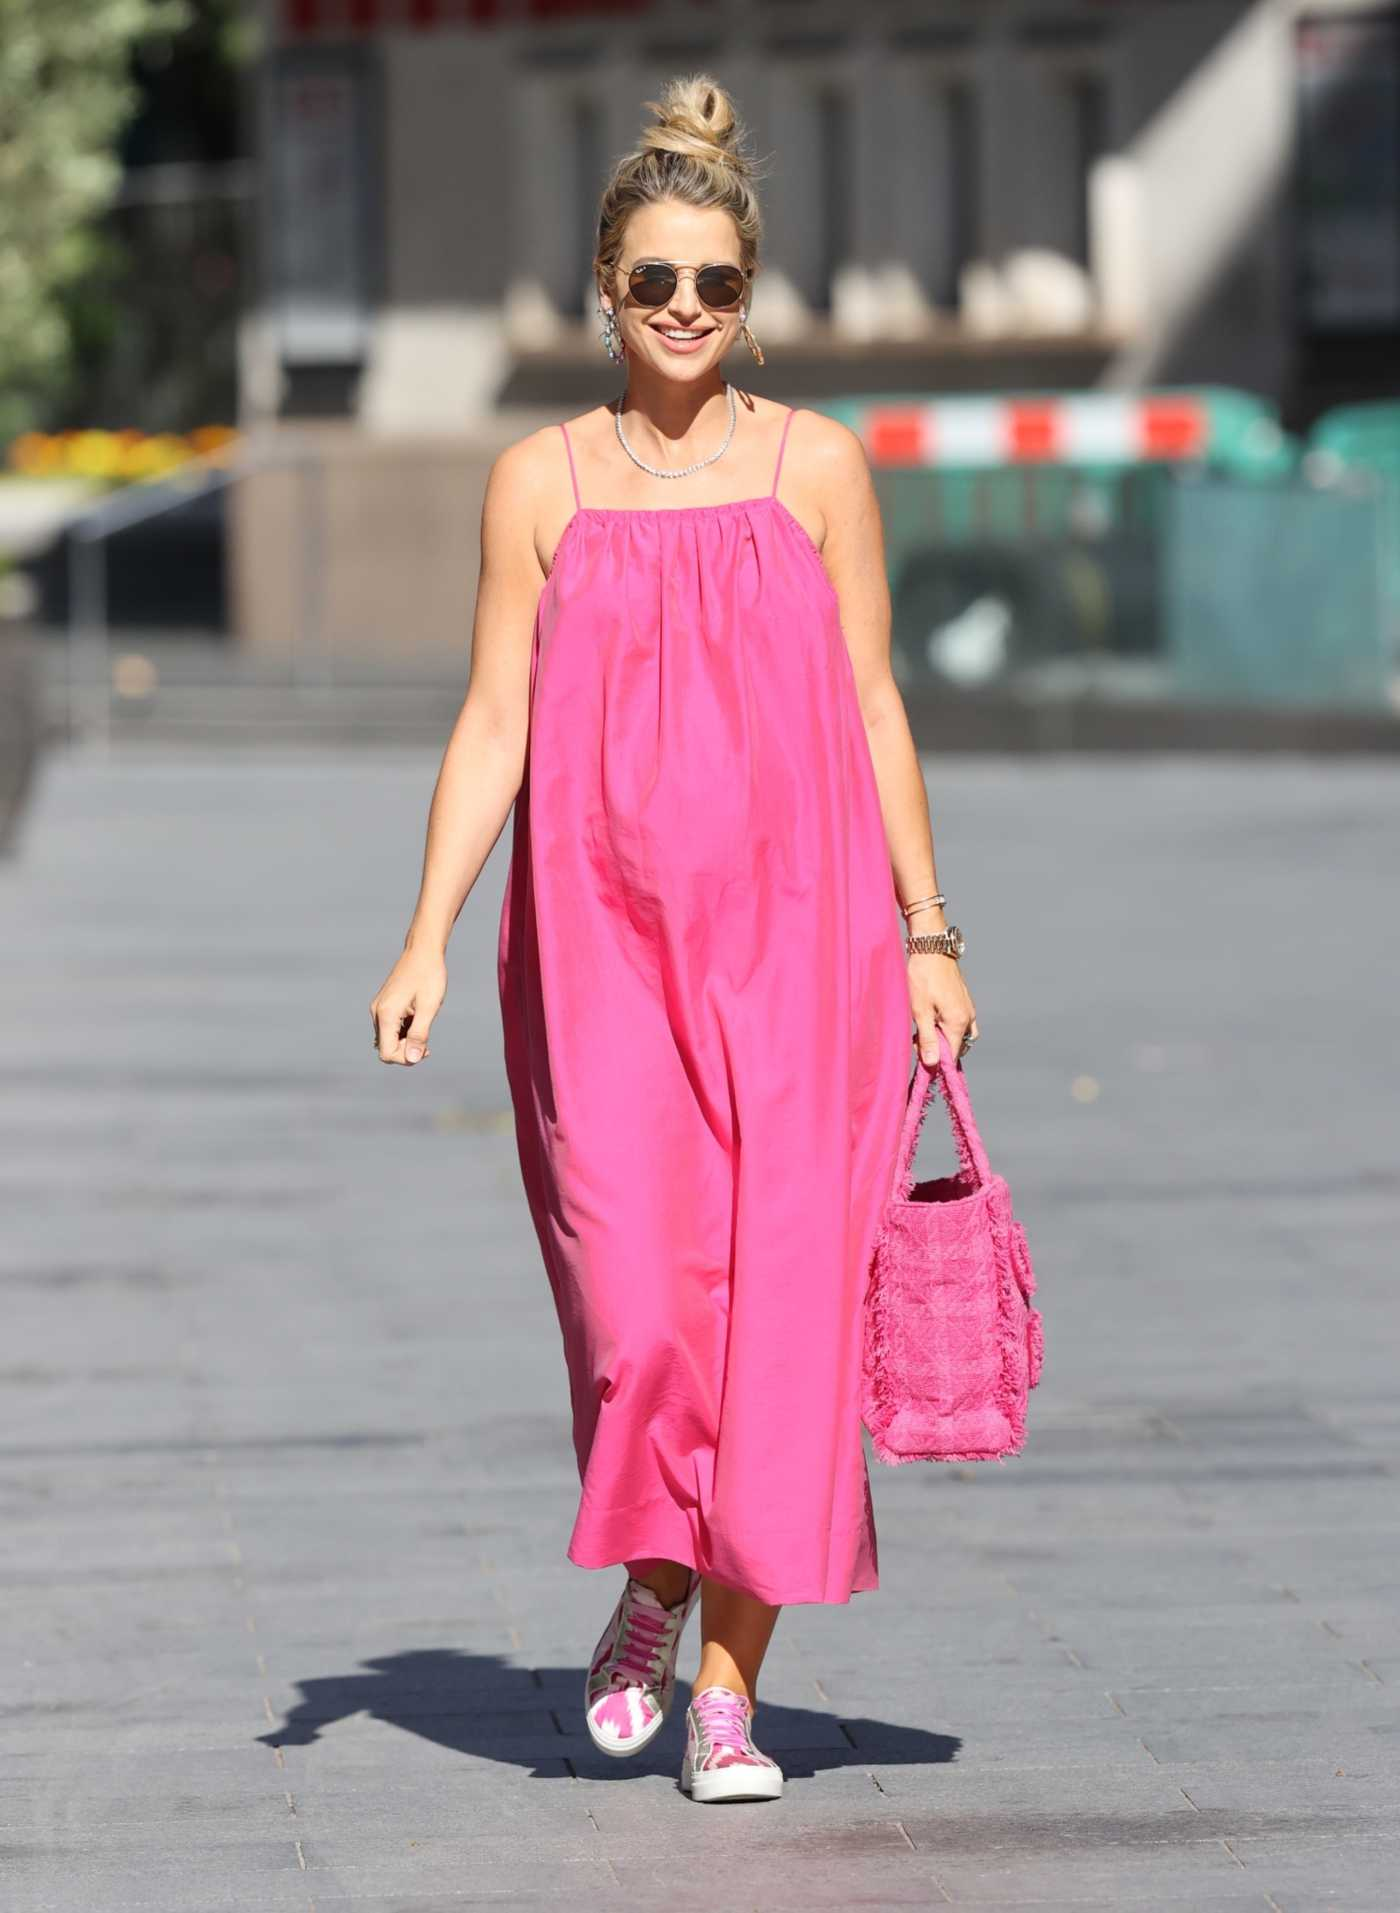 Vogue Williams in a Pink Floaty Dress Leaves the Heart Radio Studios in London 06/14/2020